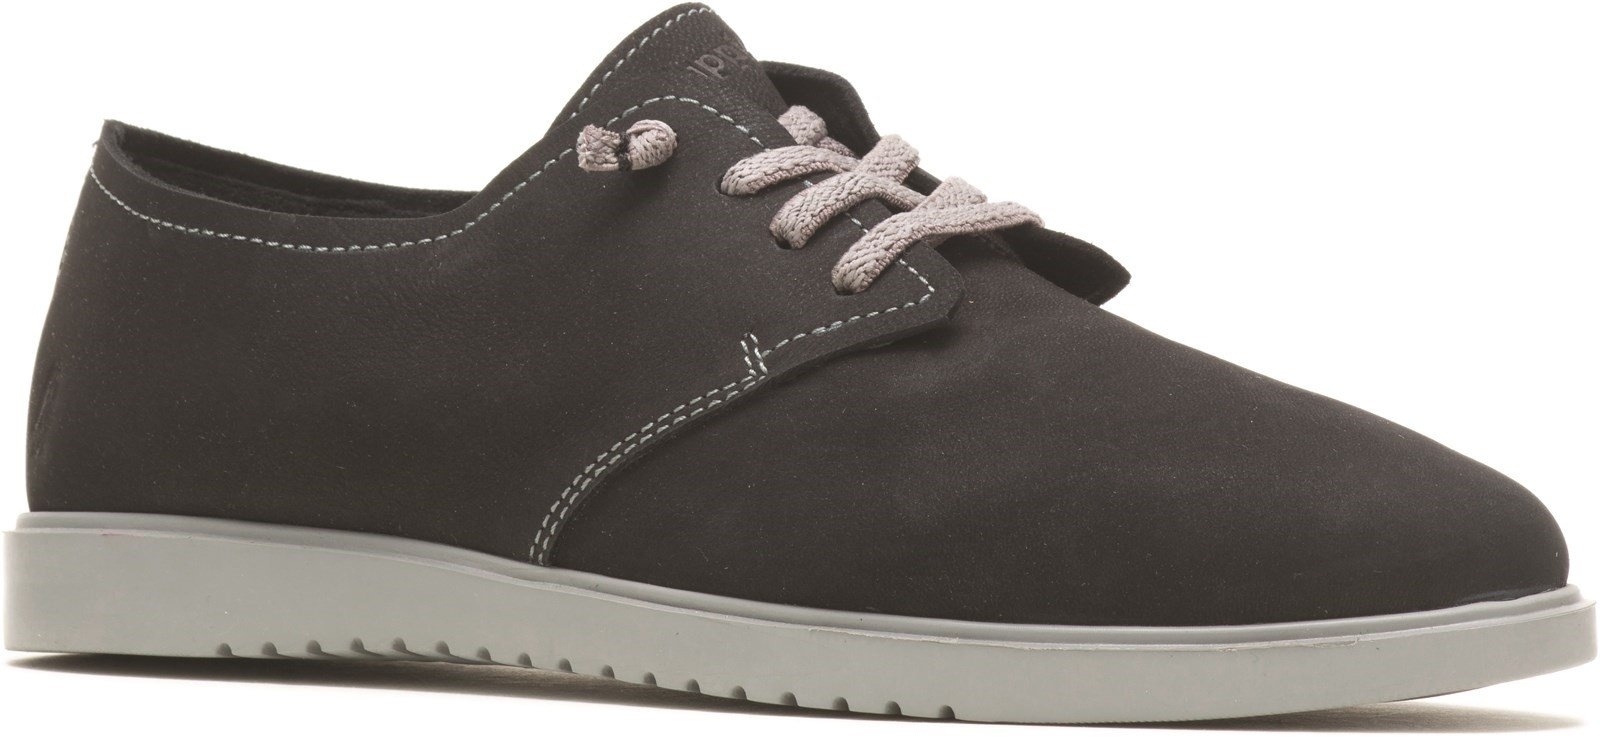 Hush Puppies Women's Everyday Lace Trainer Various Colours 31943 - Black 3